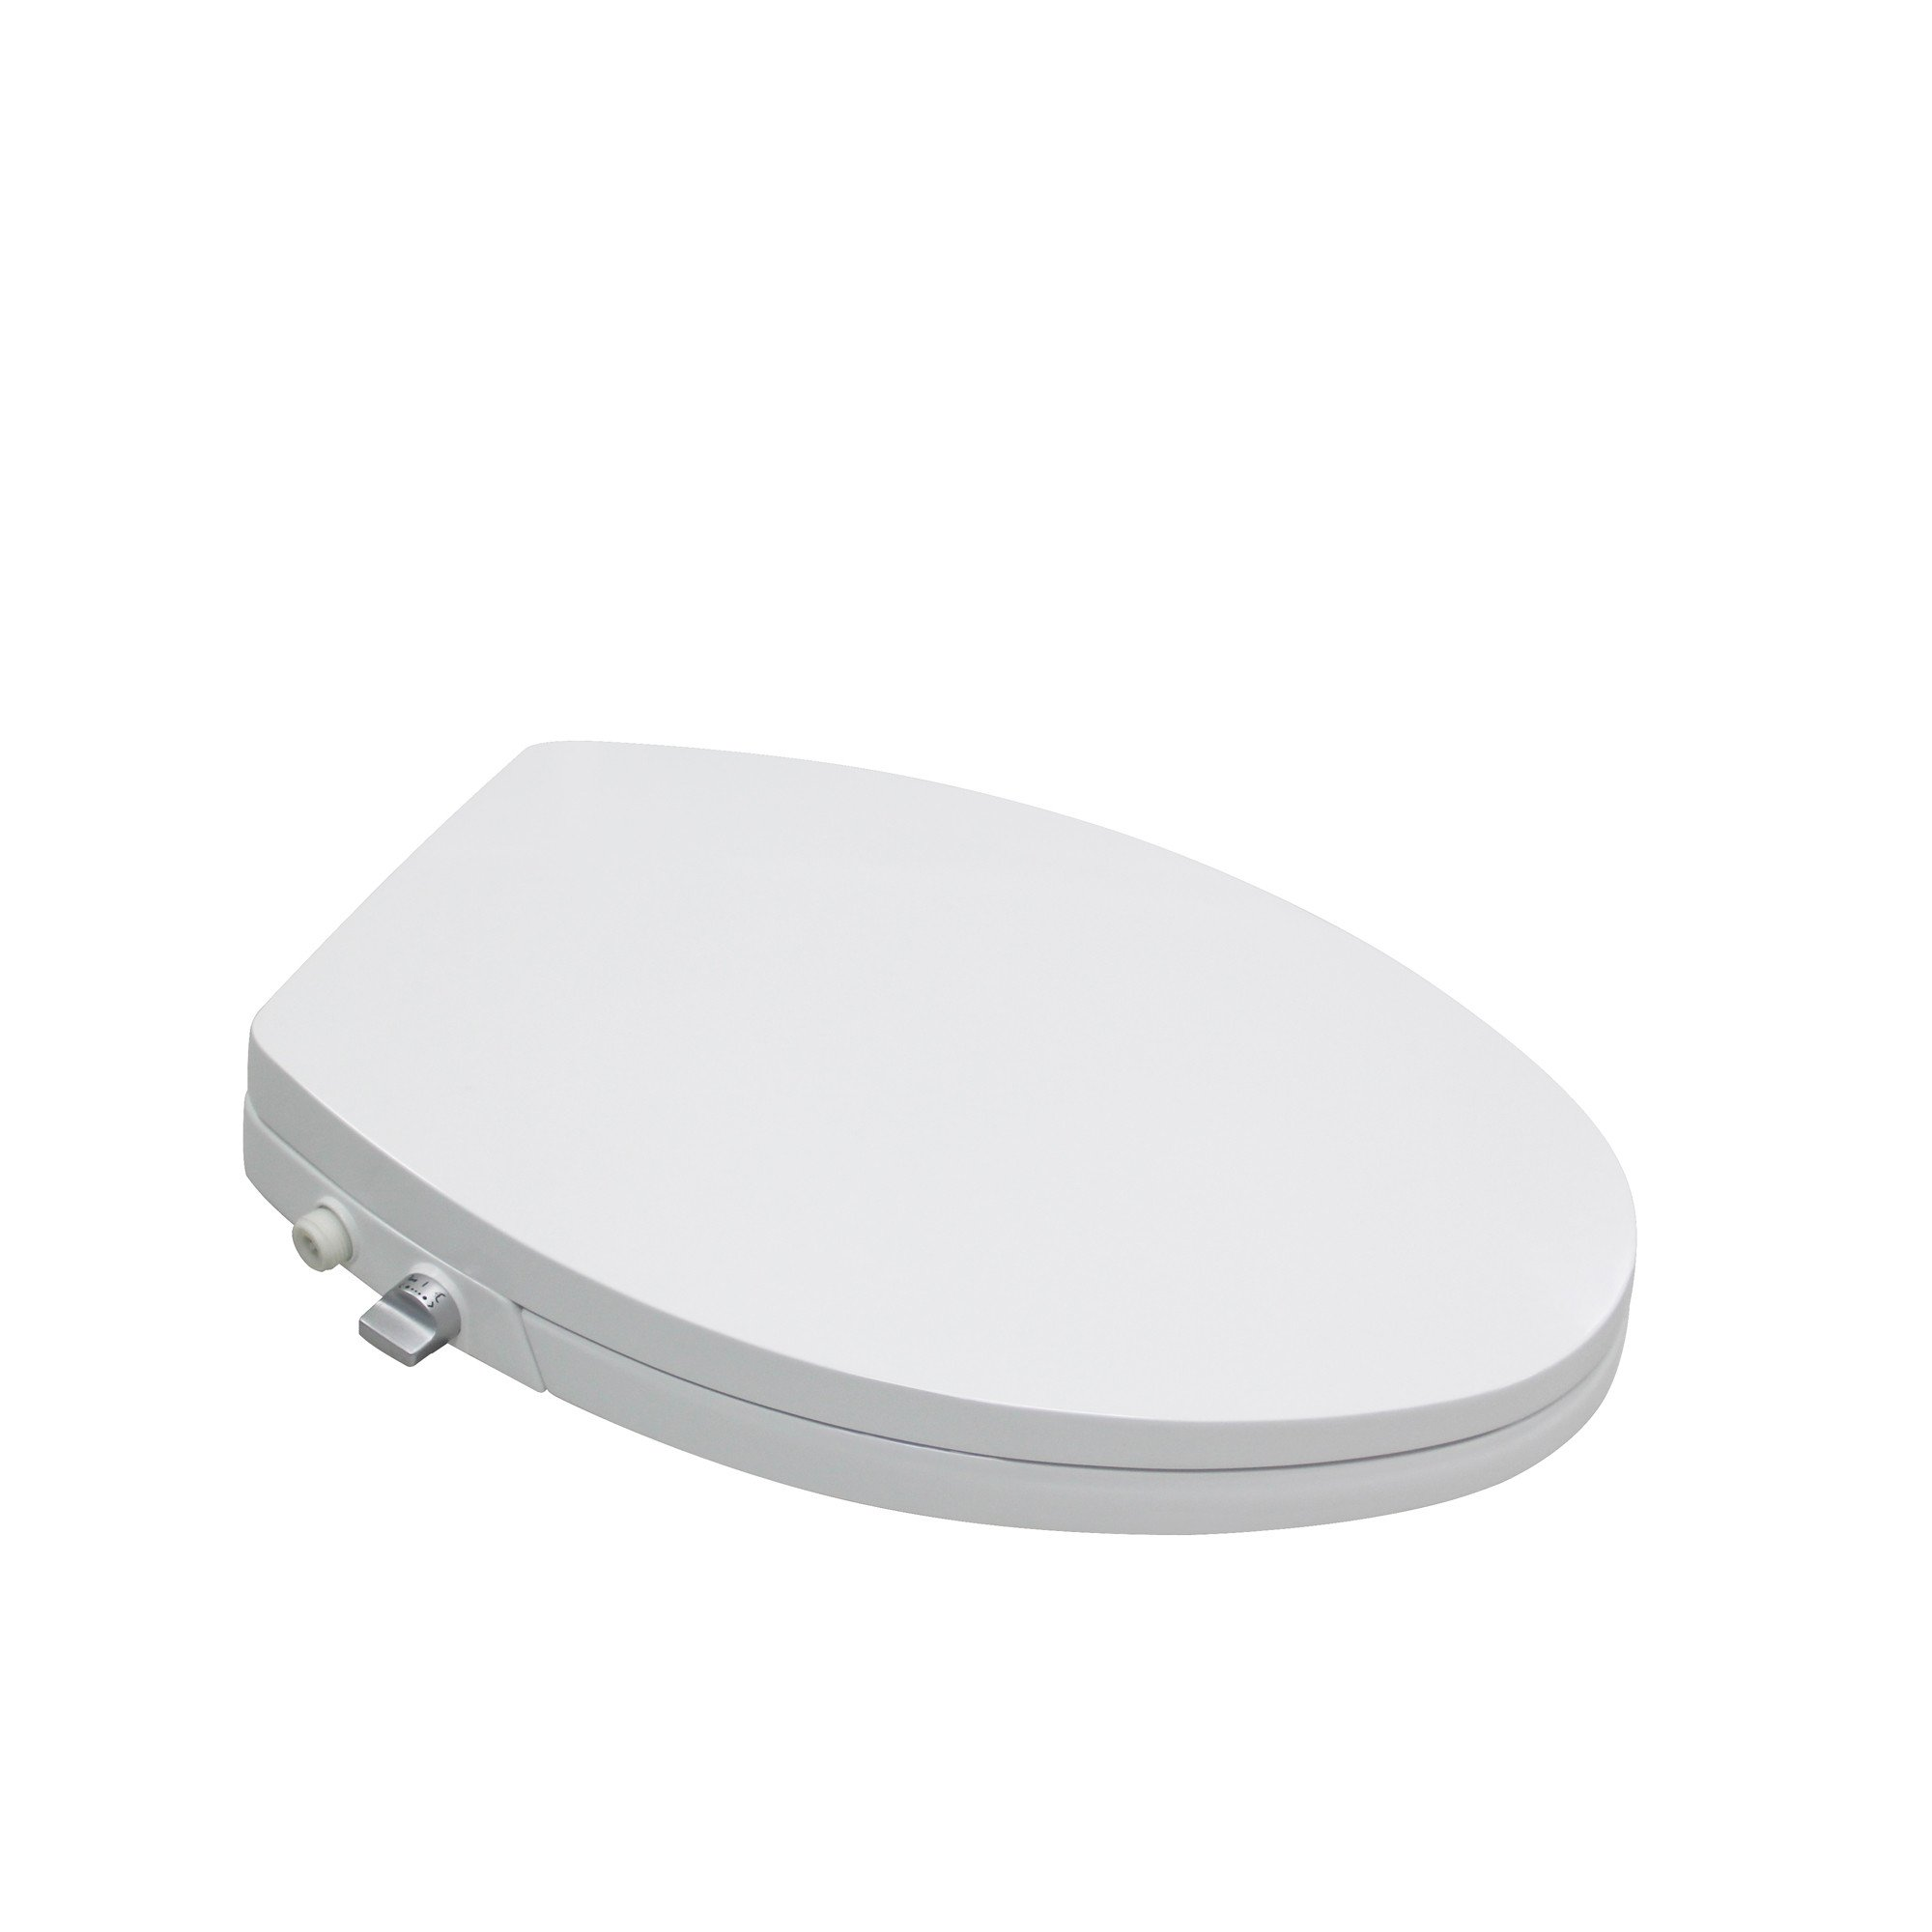 Pleasant Bidet Seat With Dual Nozzles Soft Close Toilet Seat Aim Gmtry Best Dining Table And Chair Ideas Images Gmtryco